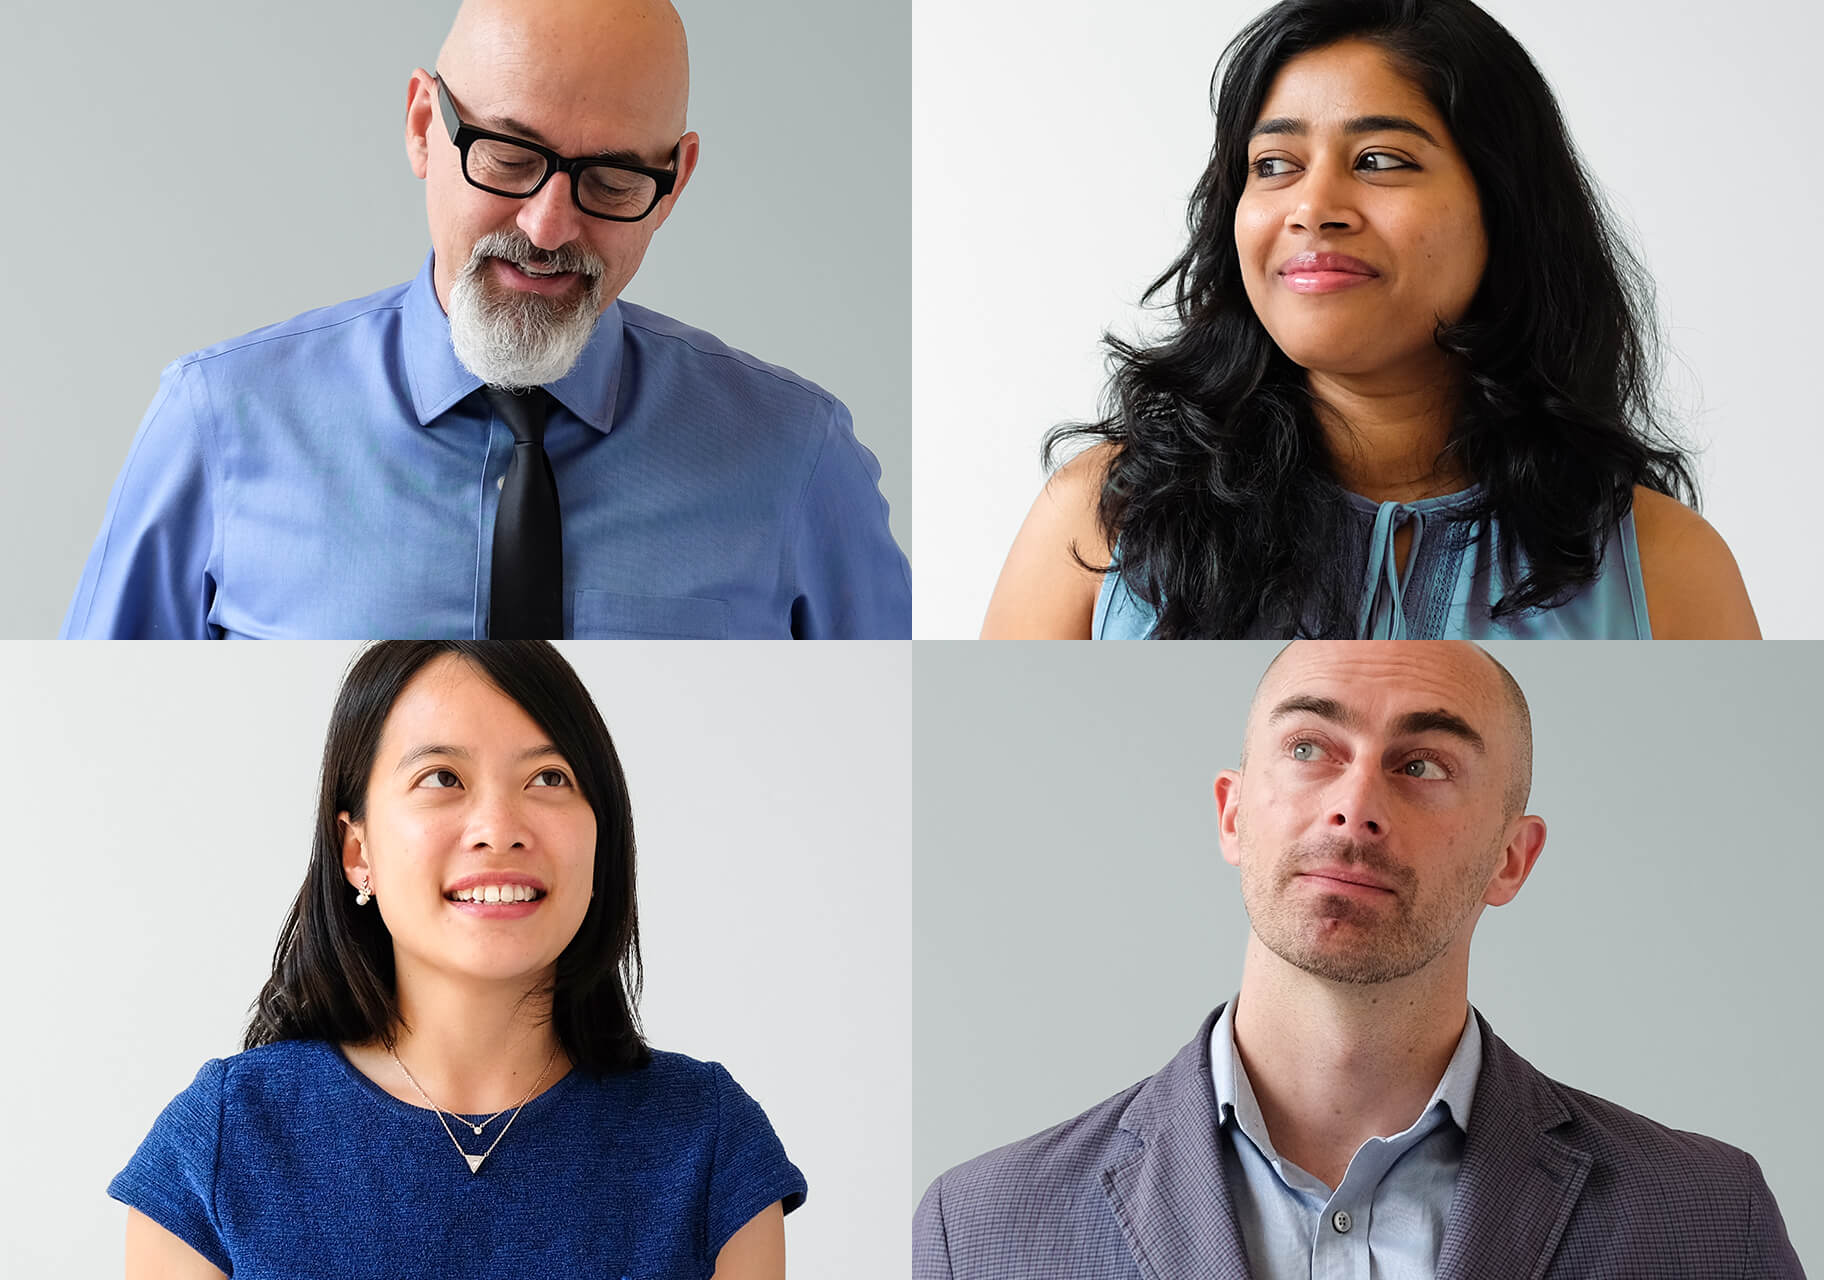 Photo of Kevin Ward, Art Director at The Works (top left), Sonam Madav, Sustainability Reporting Analyst at The Works (top right), Shu Yi Chu, Sustainability and Project Manager at The Works (bottom left), Wes Gee, Sustainability Director at The Works (bottom right)